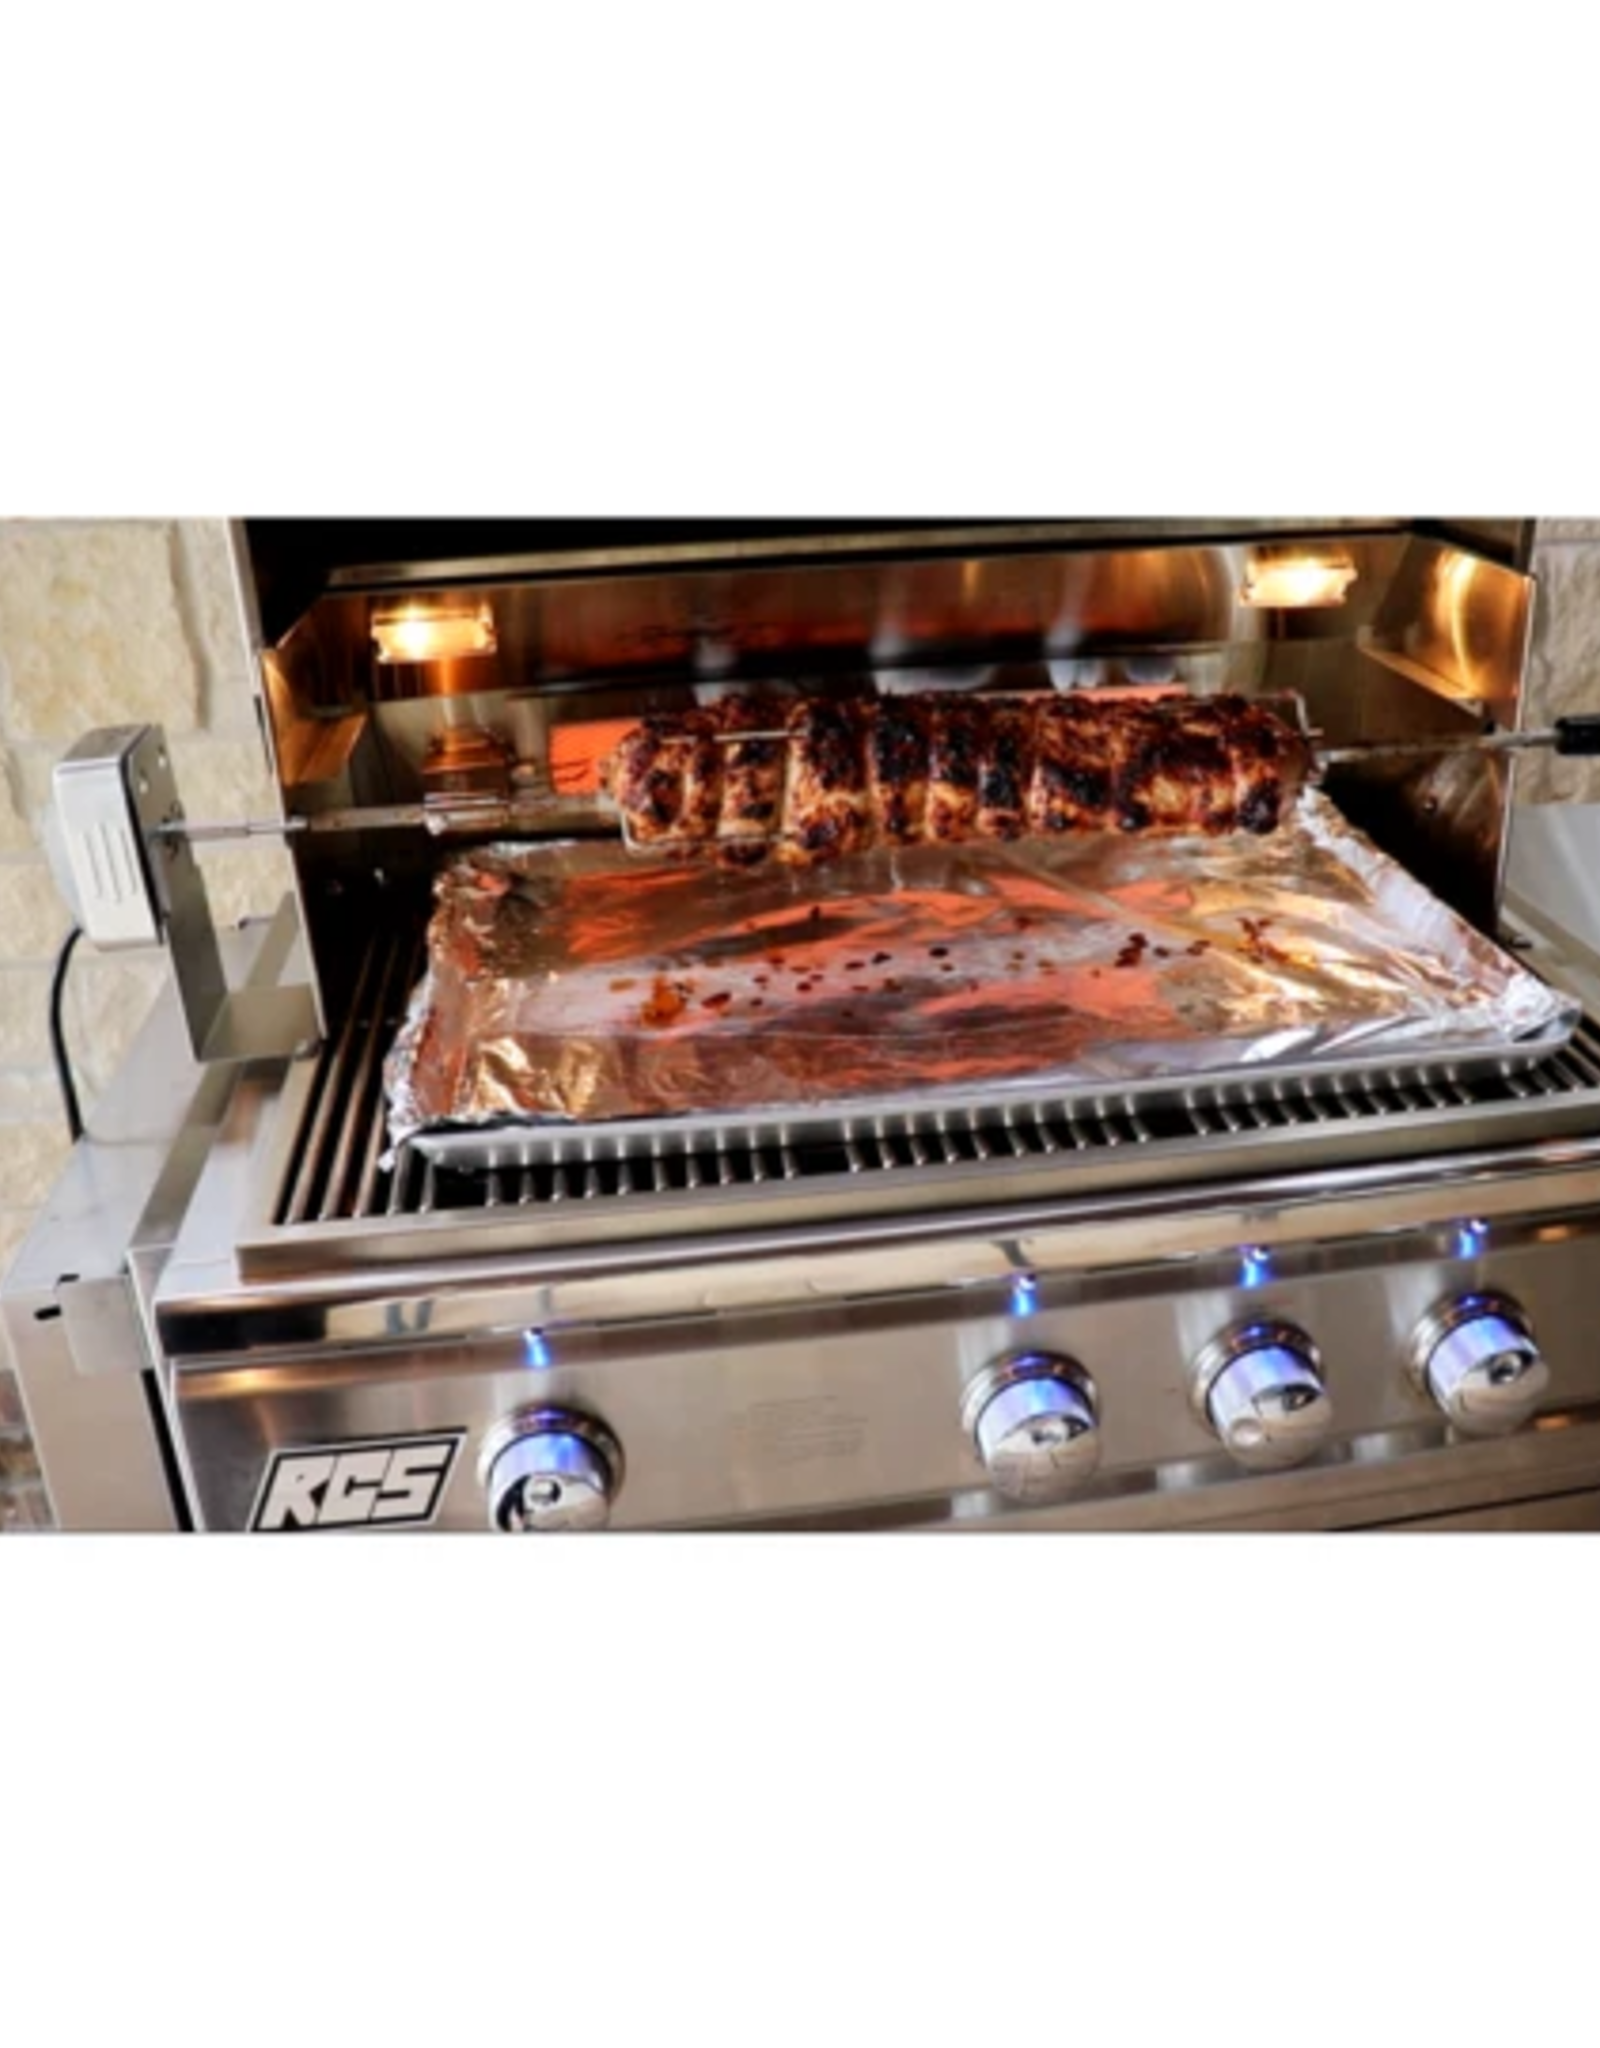 """Renaissance Cooking Systems Renaissance Cooking Systems Rotisserie Kit for the 32"""" Premier Series Grills - RJC32ROTIS"""